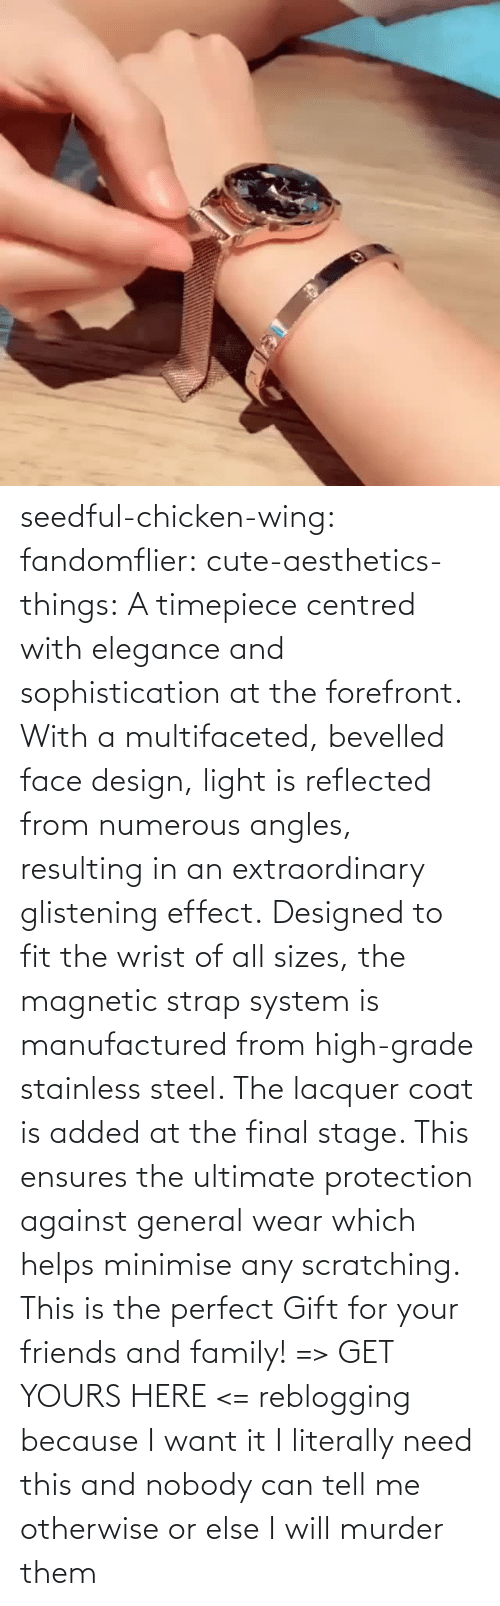 From: seedful-chicken-wing: fandomflier:  cute-aesthetics-things:   A timepiece centred with elegance and sophistication at the forefront. With a multifaceted, bevelled face design, light is reflected from numerous angles, resulting in an extraordinary glistening effect. Designed to fit the wrist of all sizes, the magnetic strap system is manufactured from high-grade stainless steel. The lacquer coat is added at the final stage. This ensures the ultimate protection against general wear which helps minimise any scratching. This is the perfect Gift for your friends and family! => GET YOURS HERE <=   reblogging because I want it  I literally need this and nobody can tell me otherwise or else I will murder them